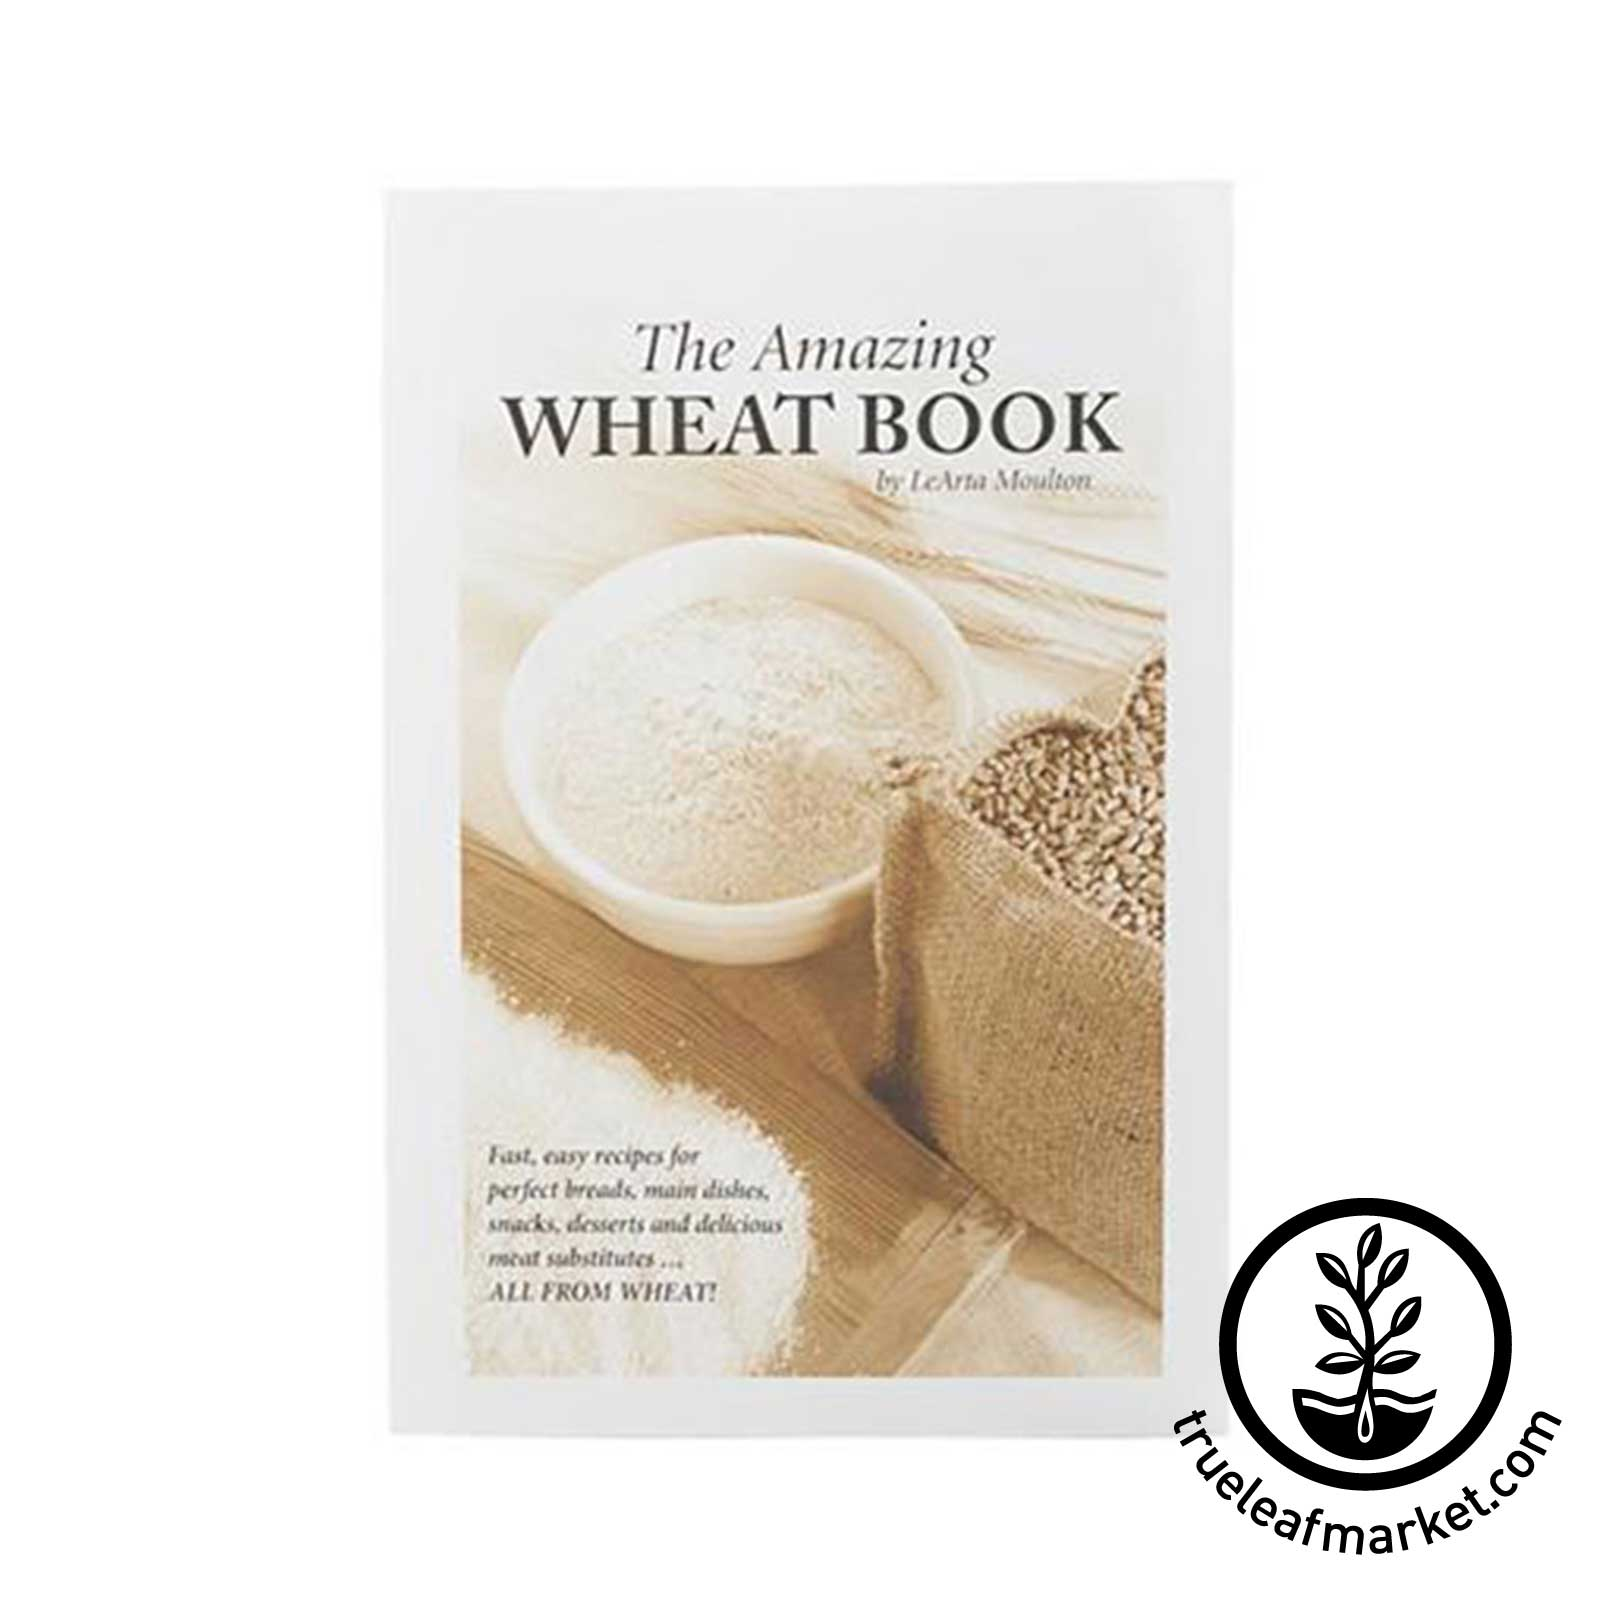 The Amazing Wheat Book by LeArta Moulton